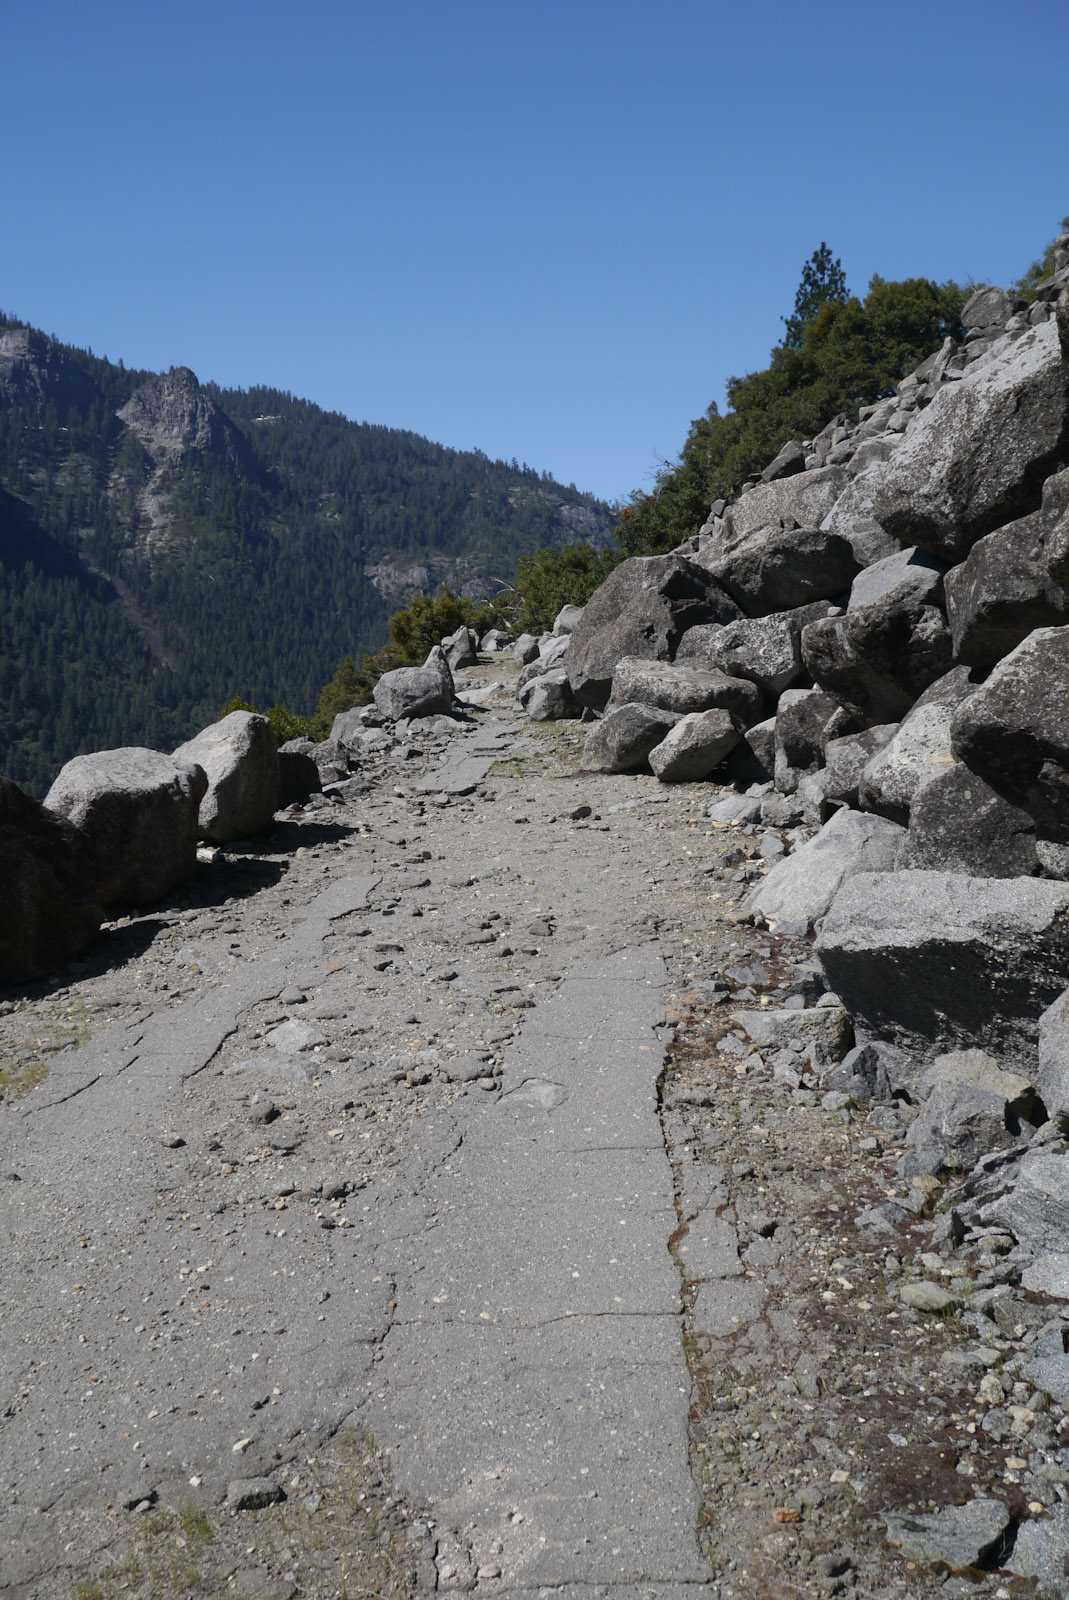 Heading up the Old Rockslides Trail. Photo Courtesy of  Calipidder.com